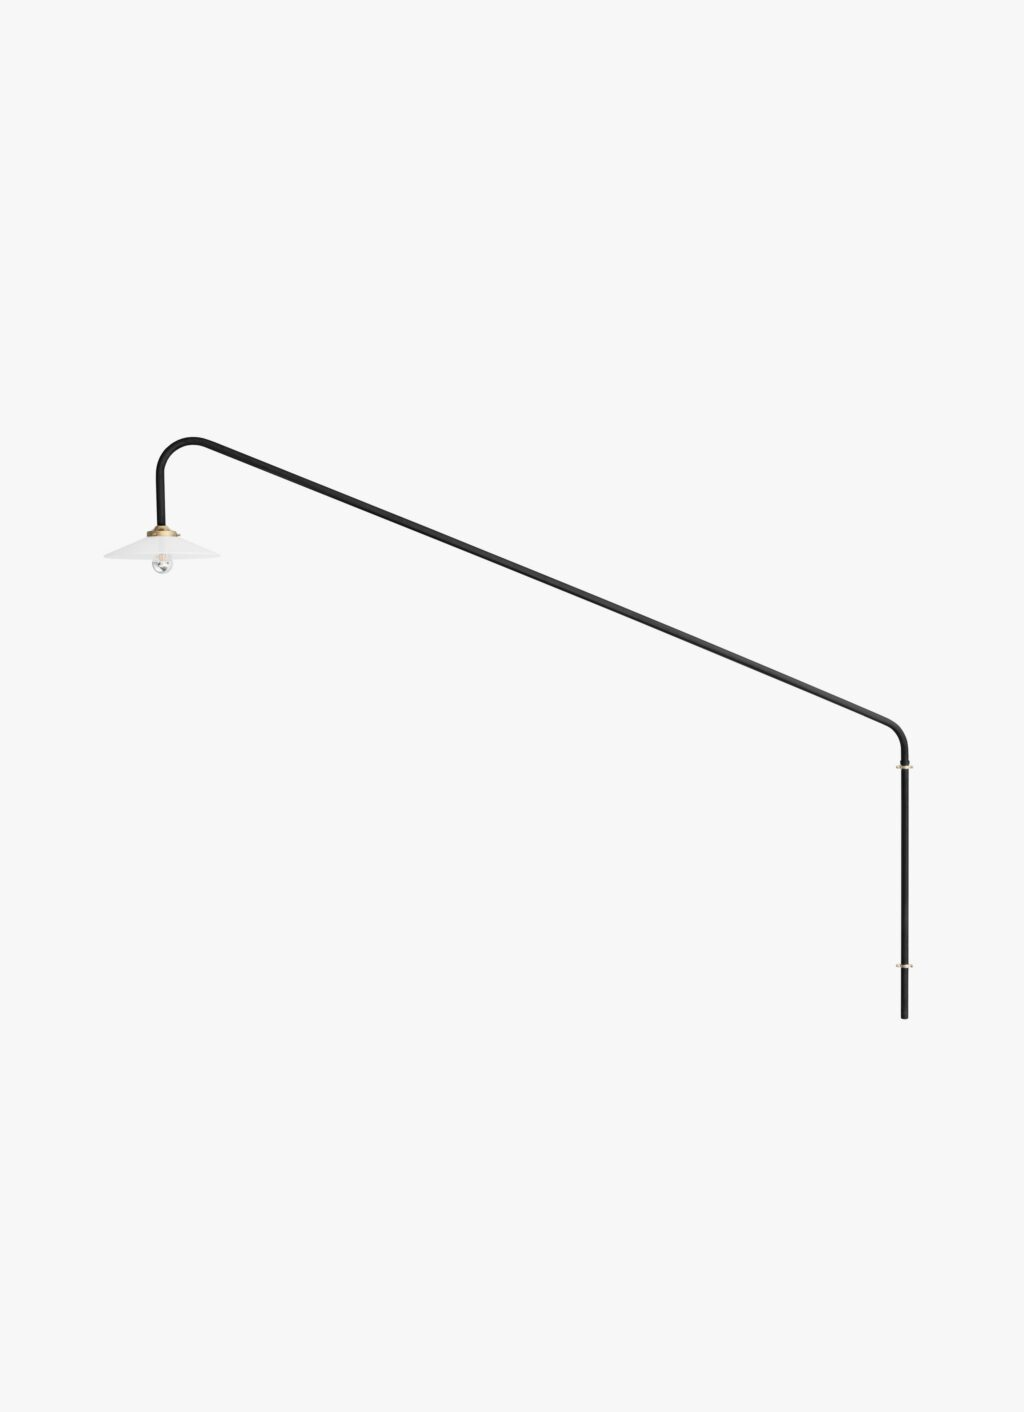 Valerie Objects - Hanging Lamp - No1 - dif. colors